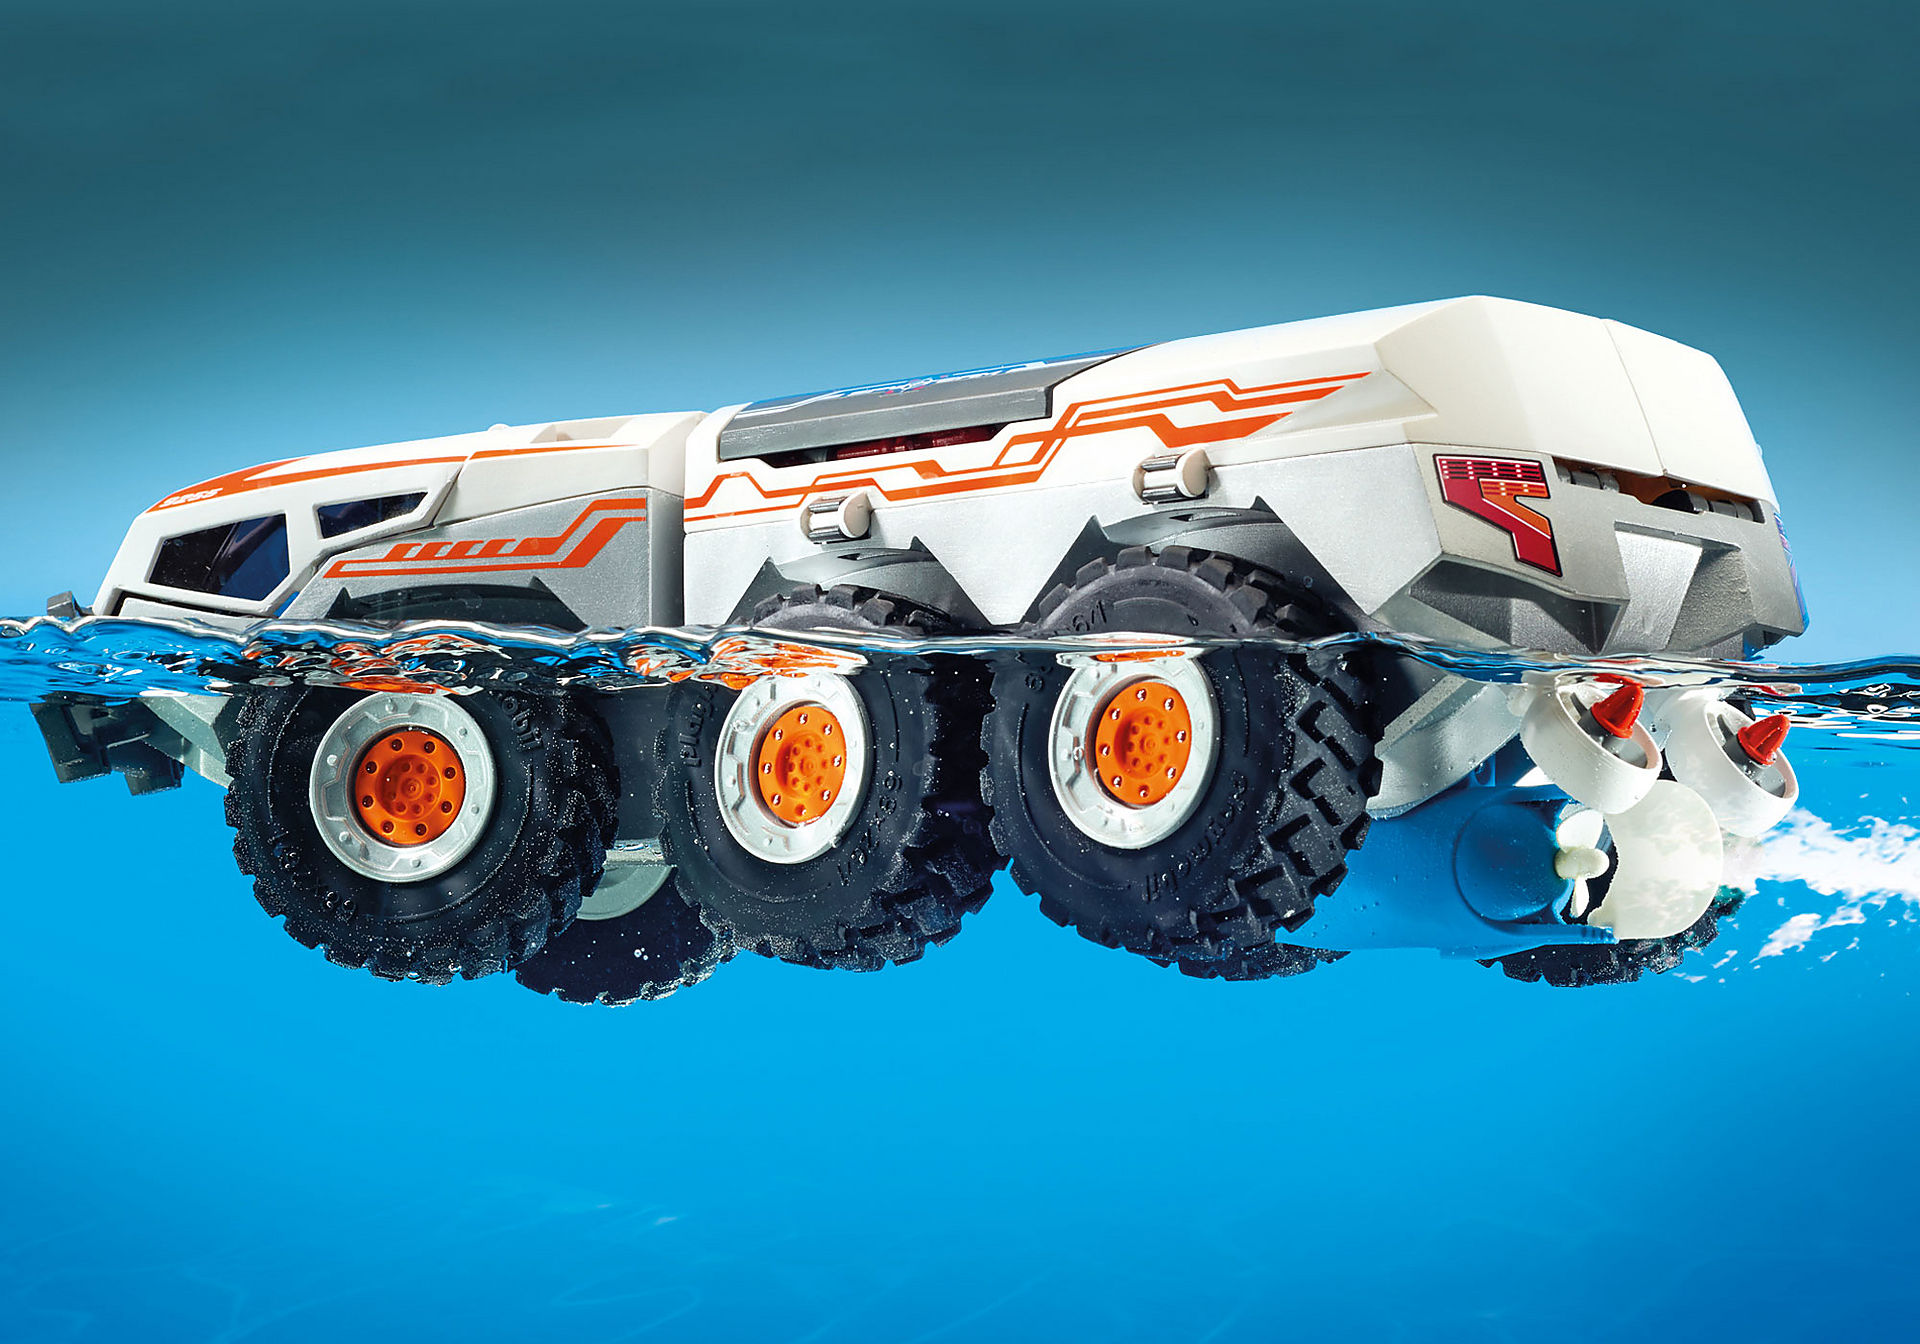 9255 Spy Team Battle Truck zoom image6